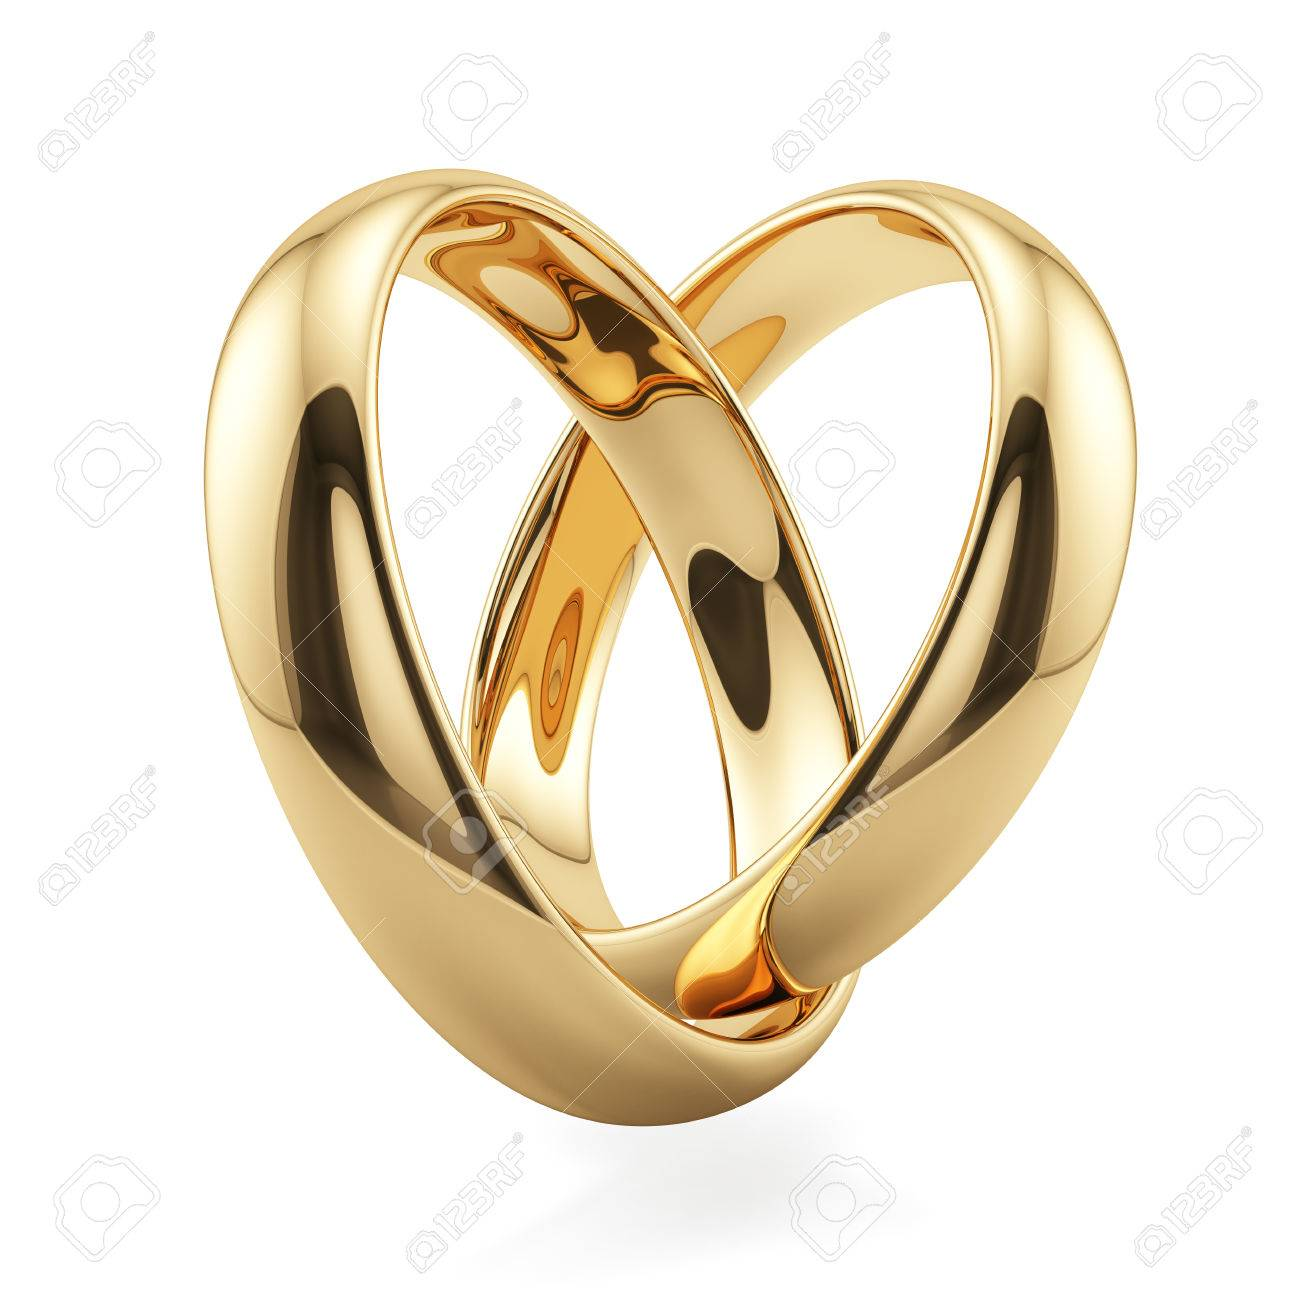 3d Render Of Golden Rings Heart Shape Isolated On White Background ...